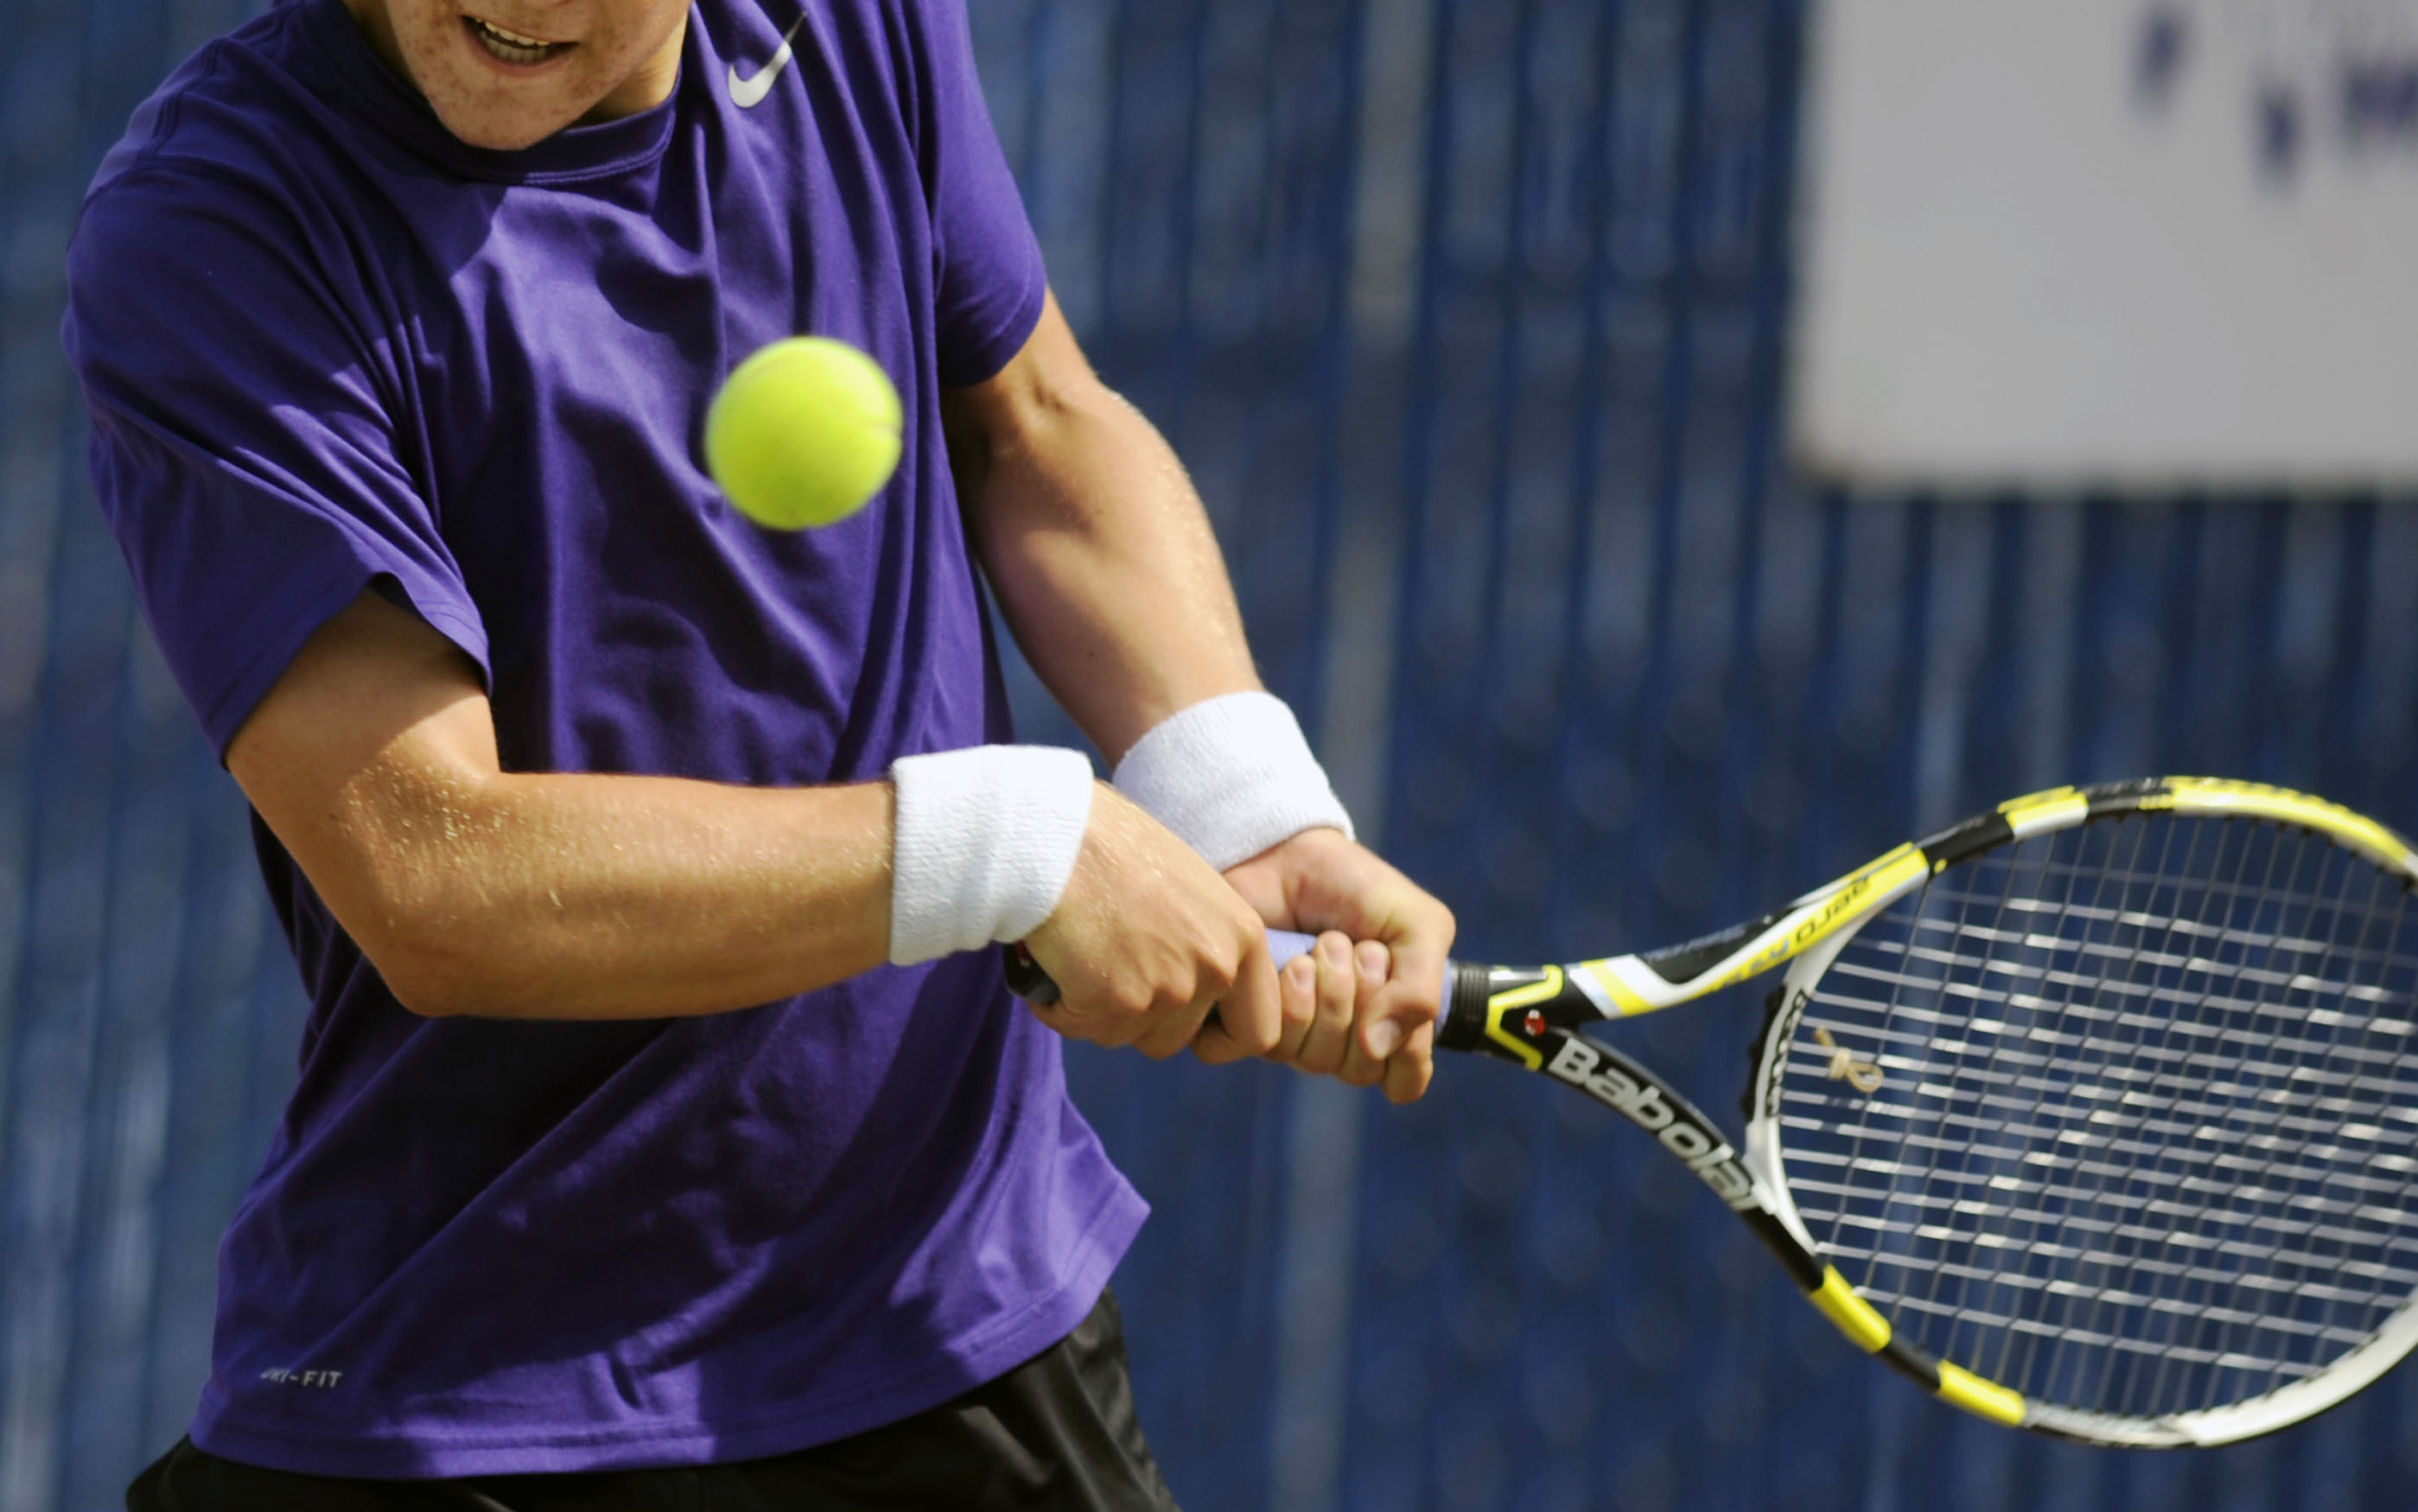 AND BOOM! THEY'RE BACK! TENNIS DOMINATES ON RE-OPENER